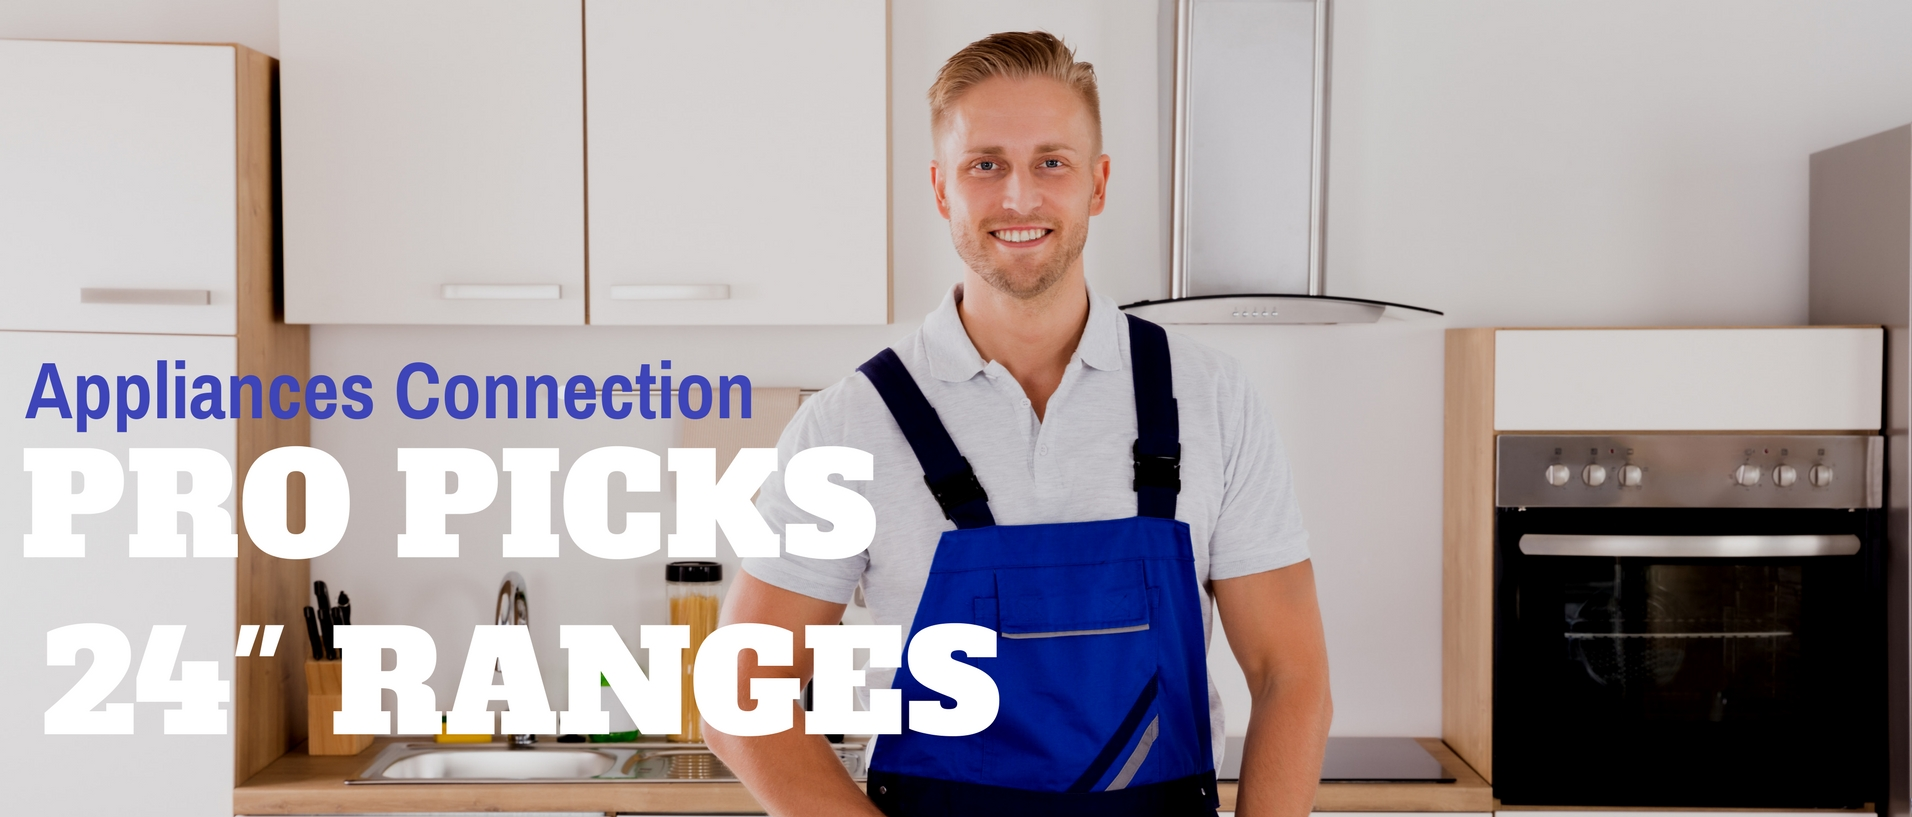 Check out these great cooking range recommendations from Appliances Connection for 24-inch ranges.